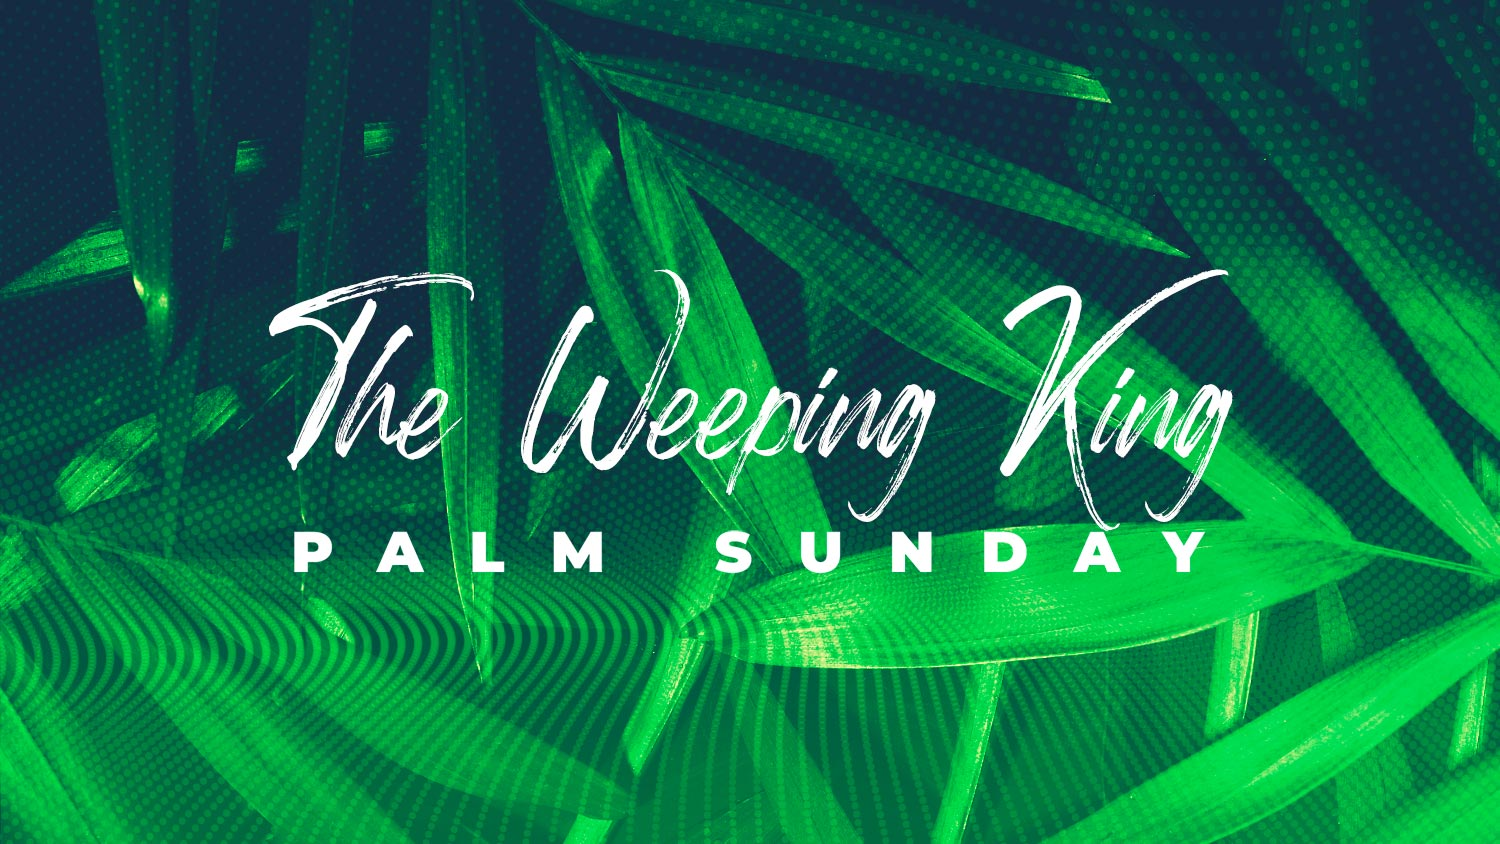 The Weeping King - Palm Sunday Image